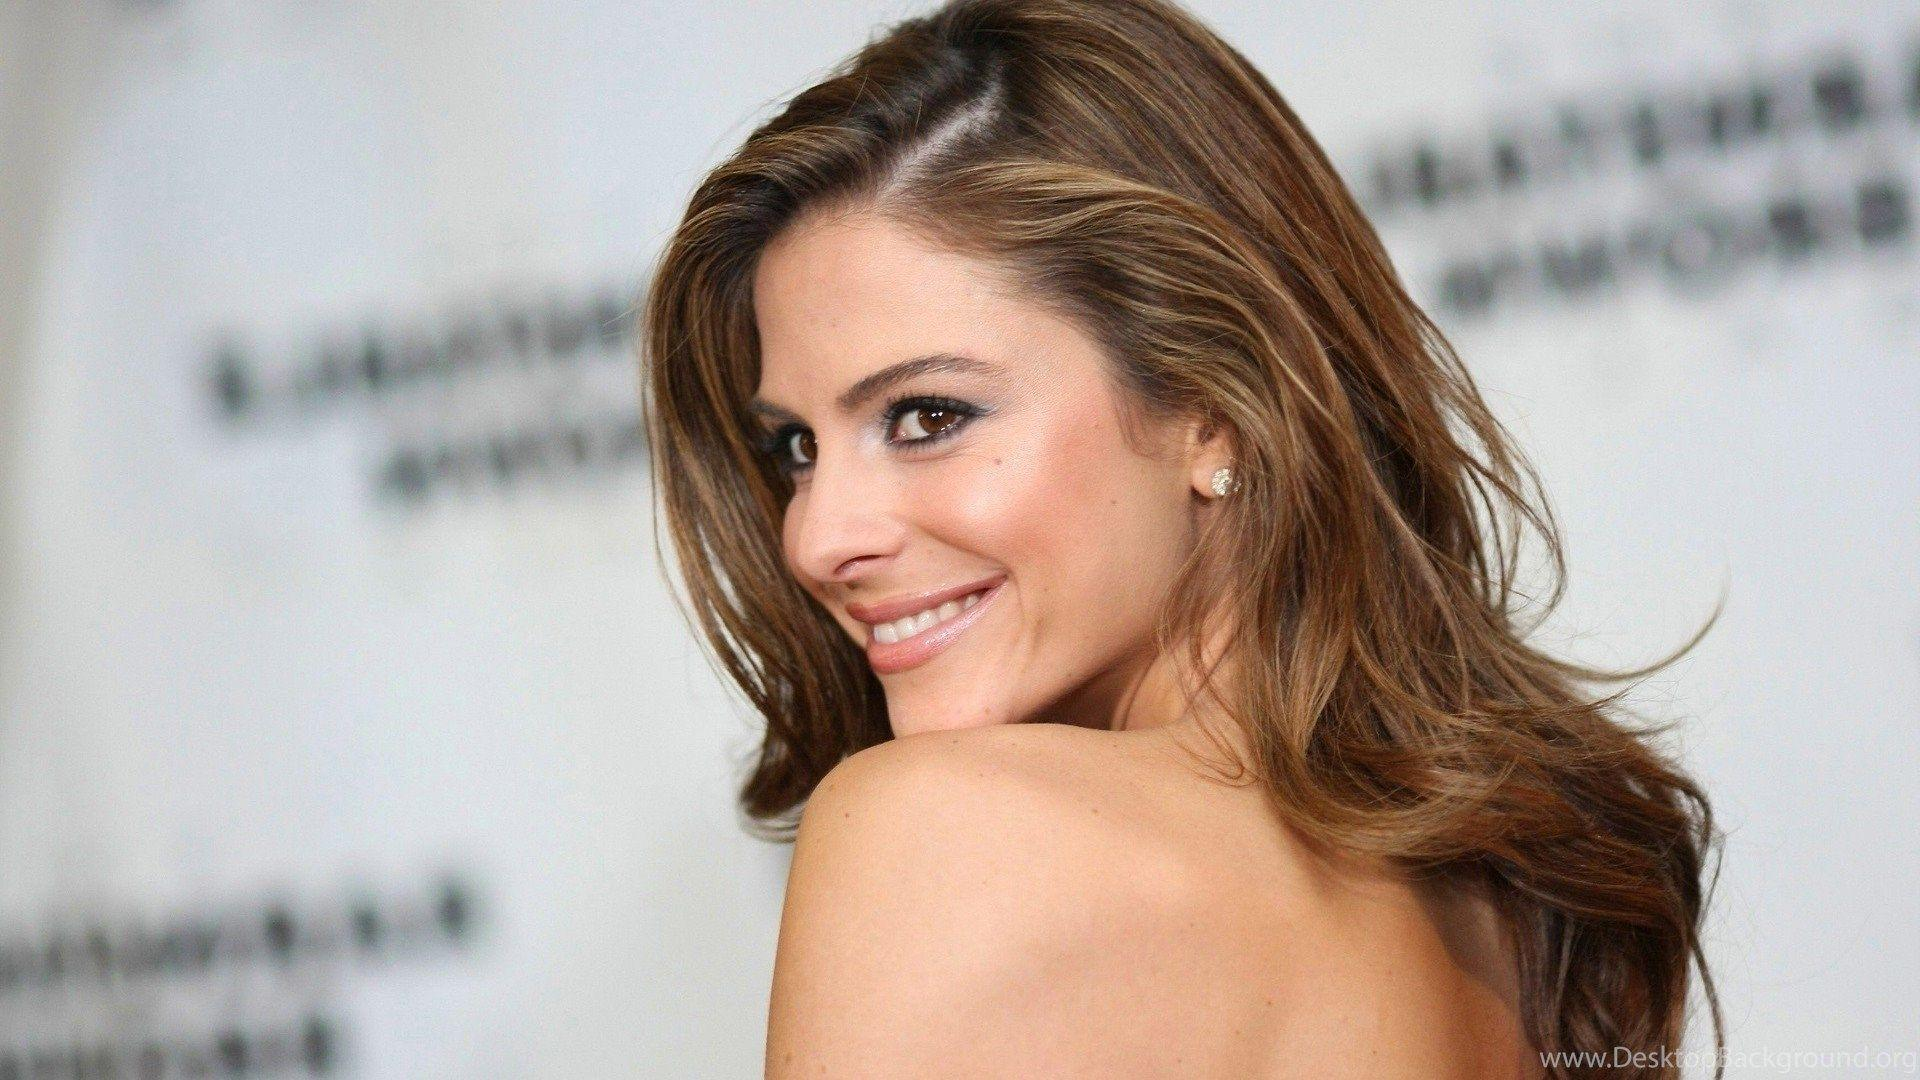 Gorgeous Maria Menounos Wallpapers Desktop Backgrounds